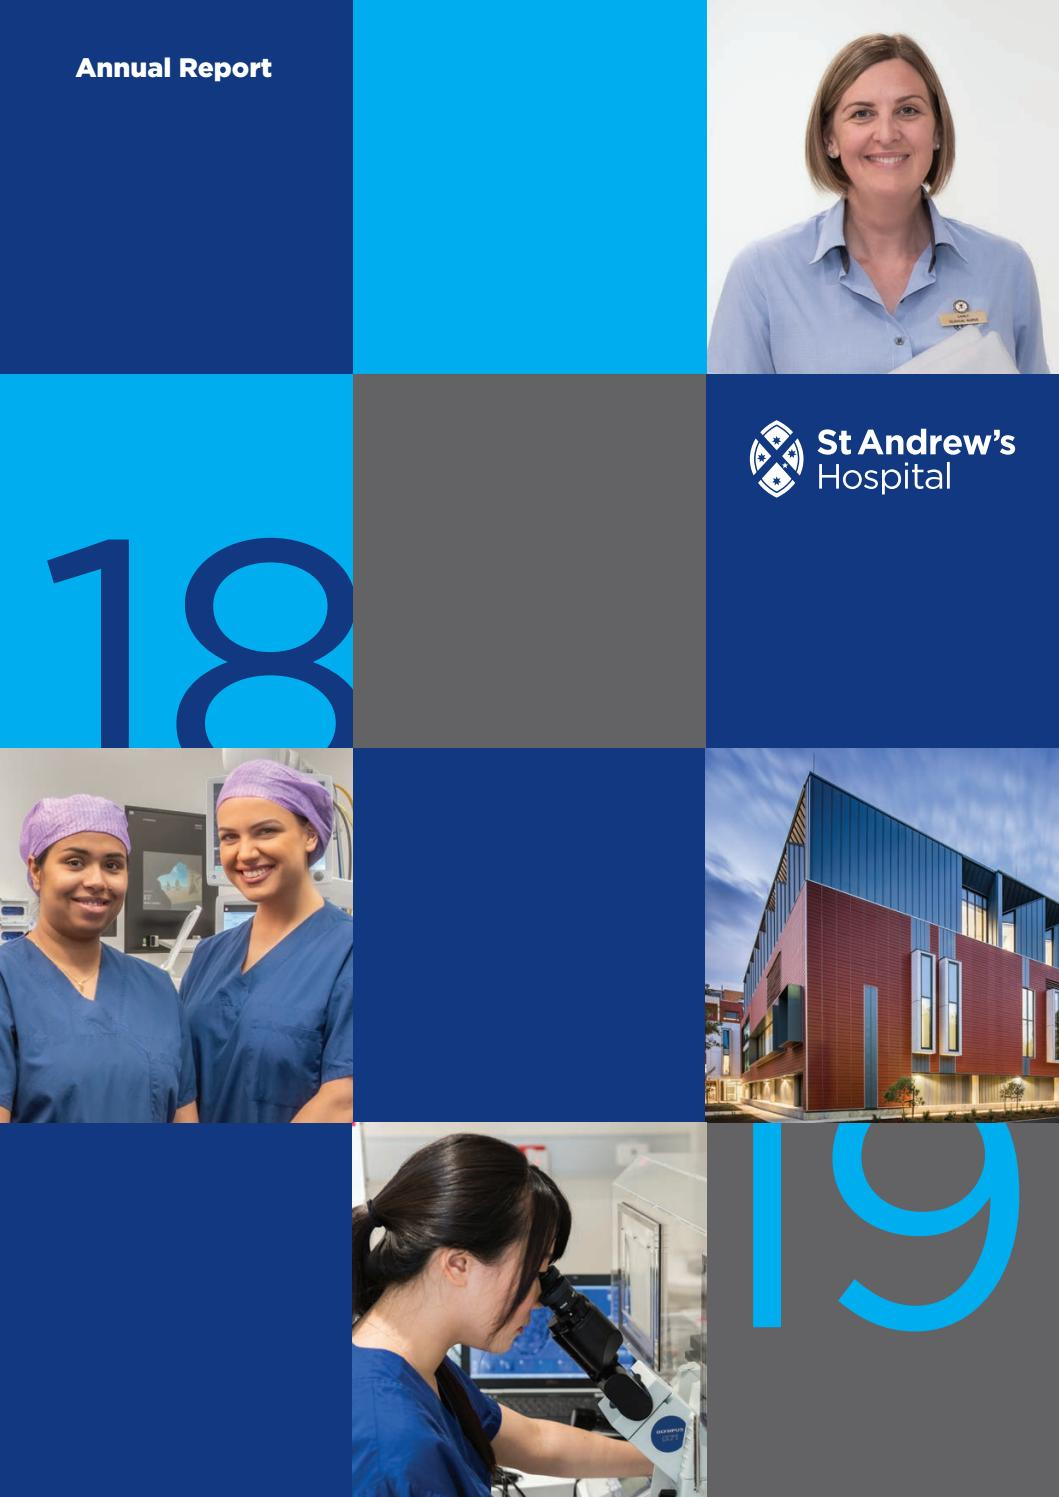 St Andrew S Hospital Annual Report 2018 19 By St Andrews Hospital Issuu